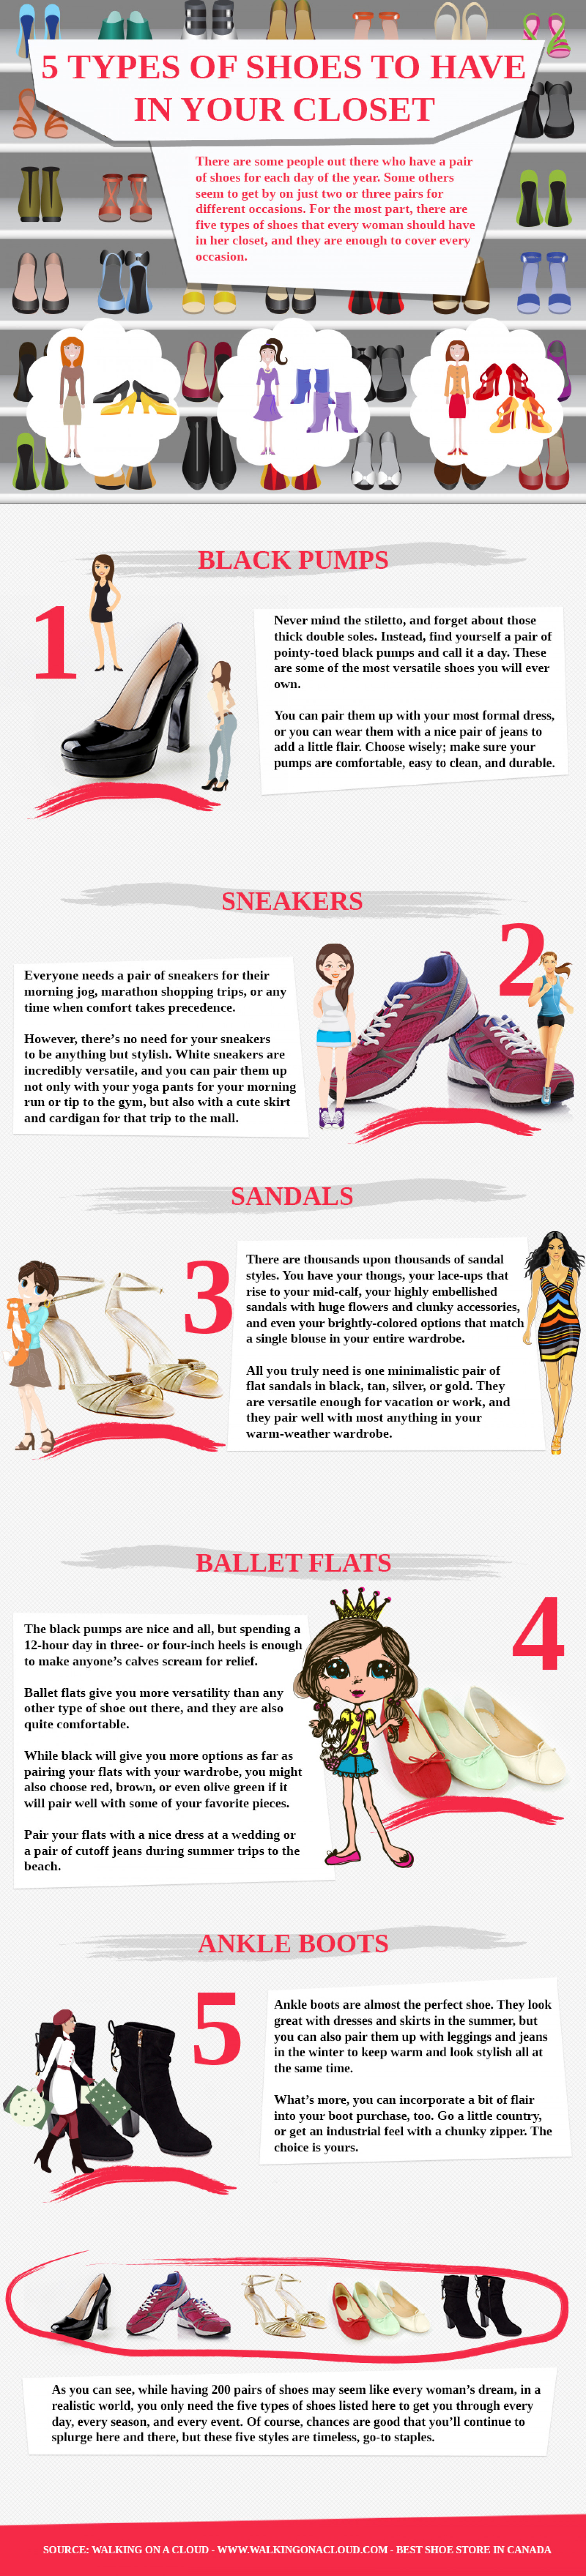 5 Types of Shoes to Have in Your Closet Infographic